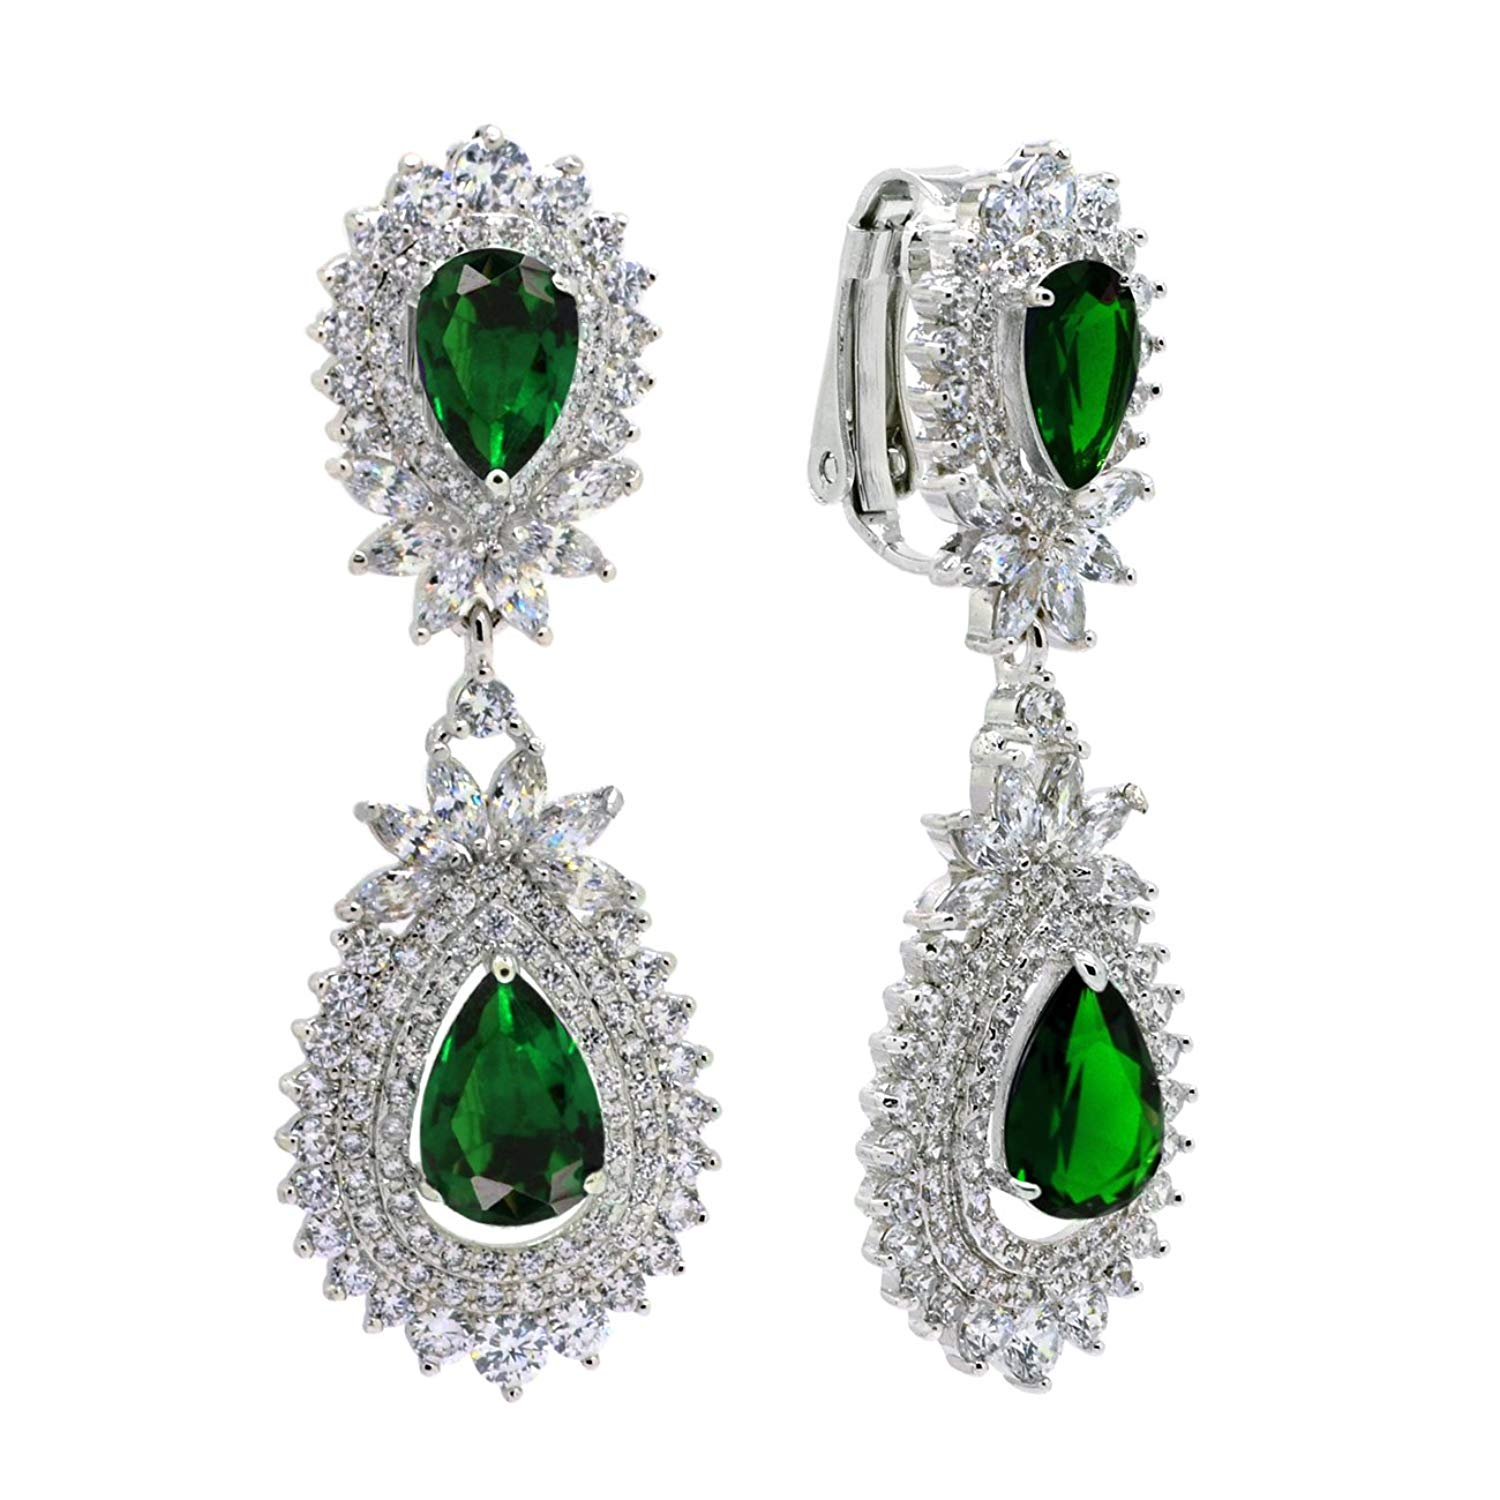 78ccd0775079f Cheap Sparkly Green Earrings, find Sparkly Green Earrings deals on ...